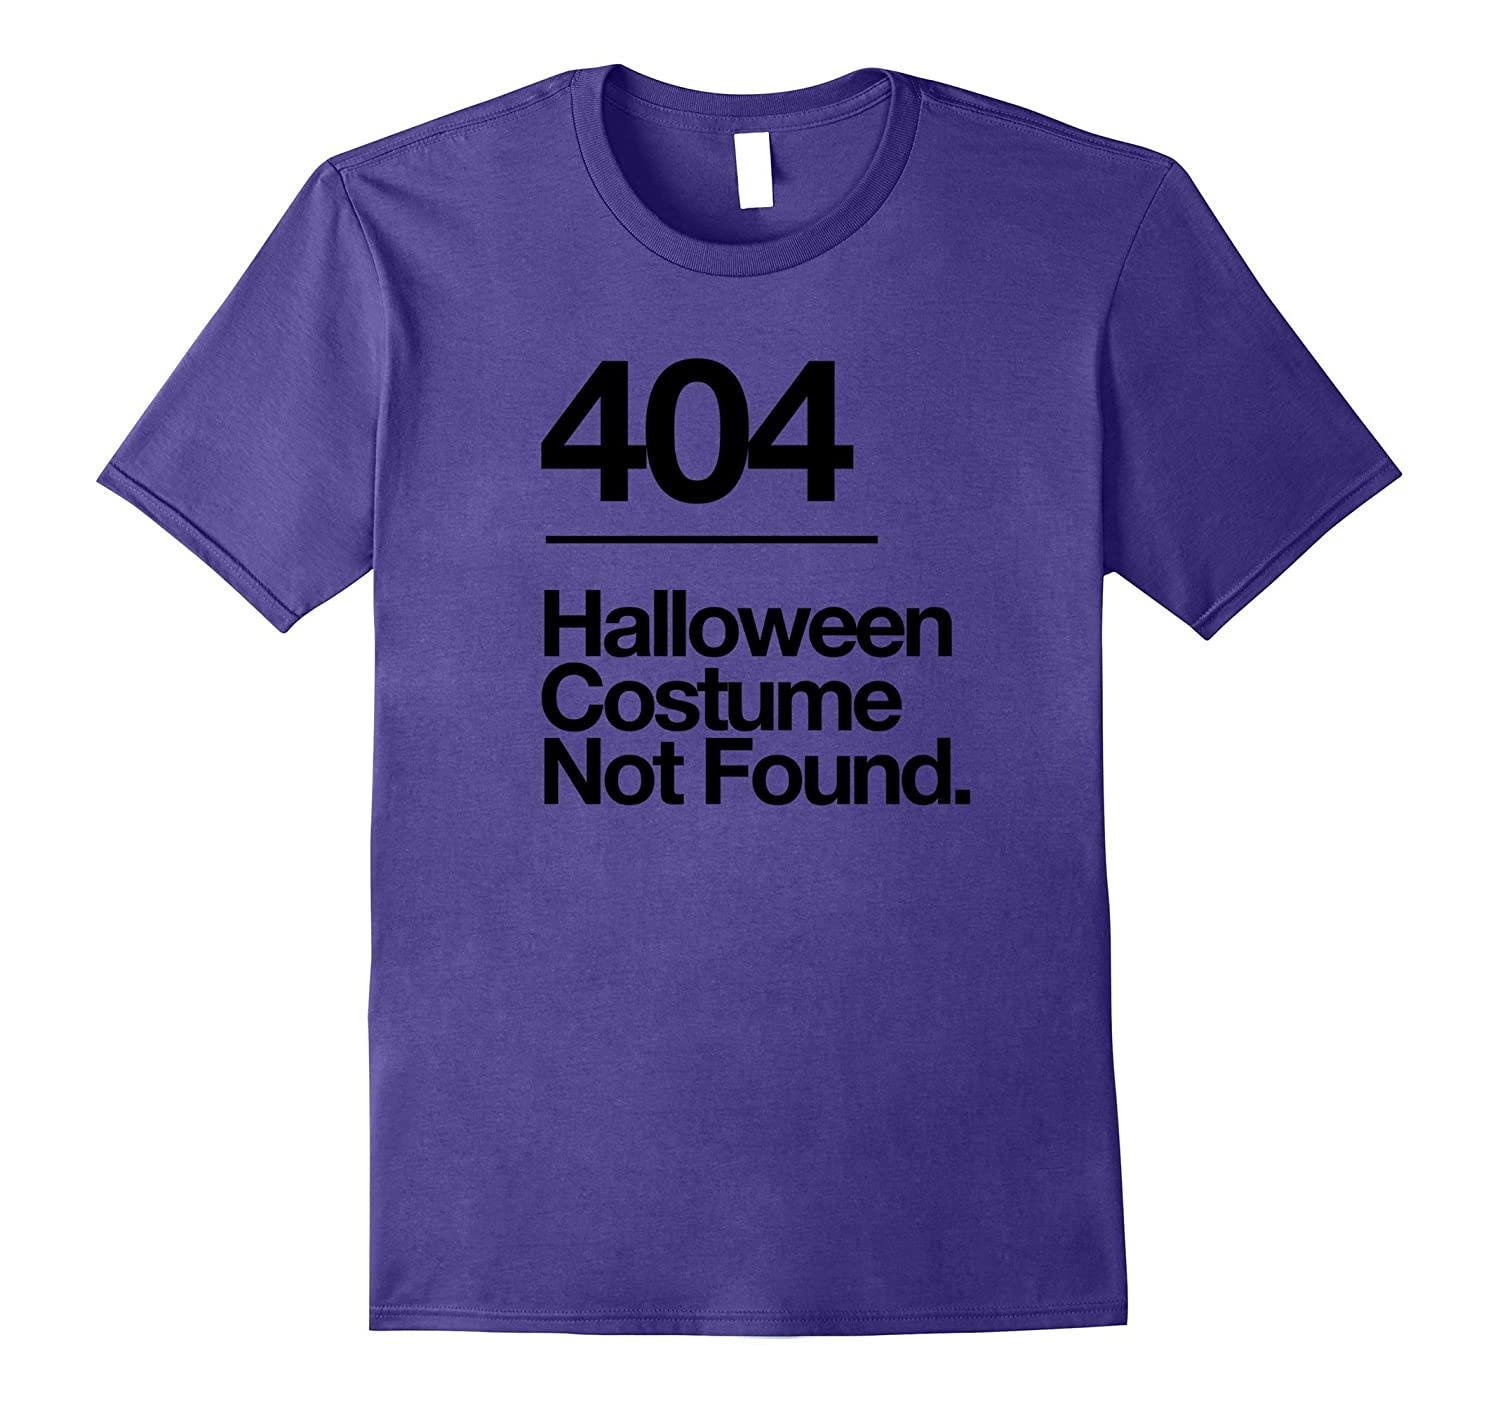 404 Costume Not Found Shirt Funny Halloween Fail T-Shirt-FL